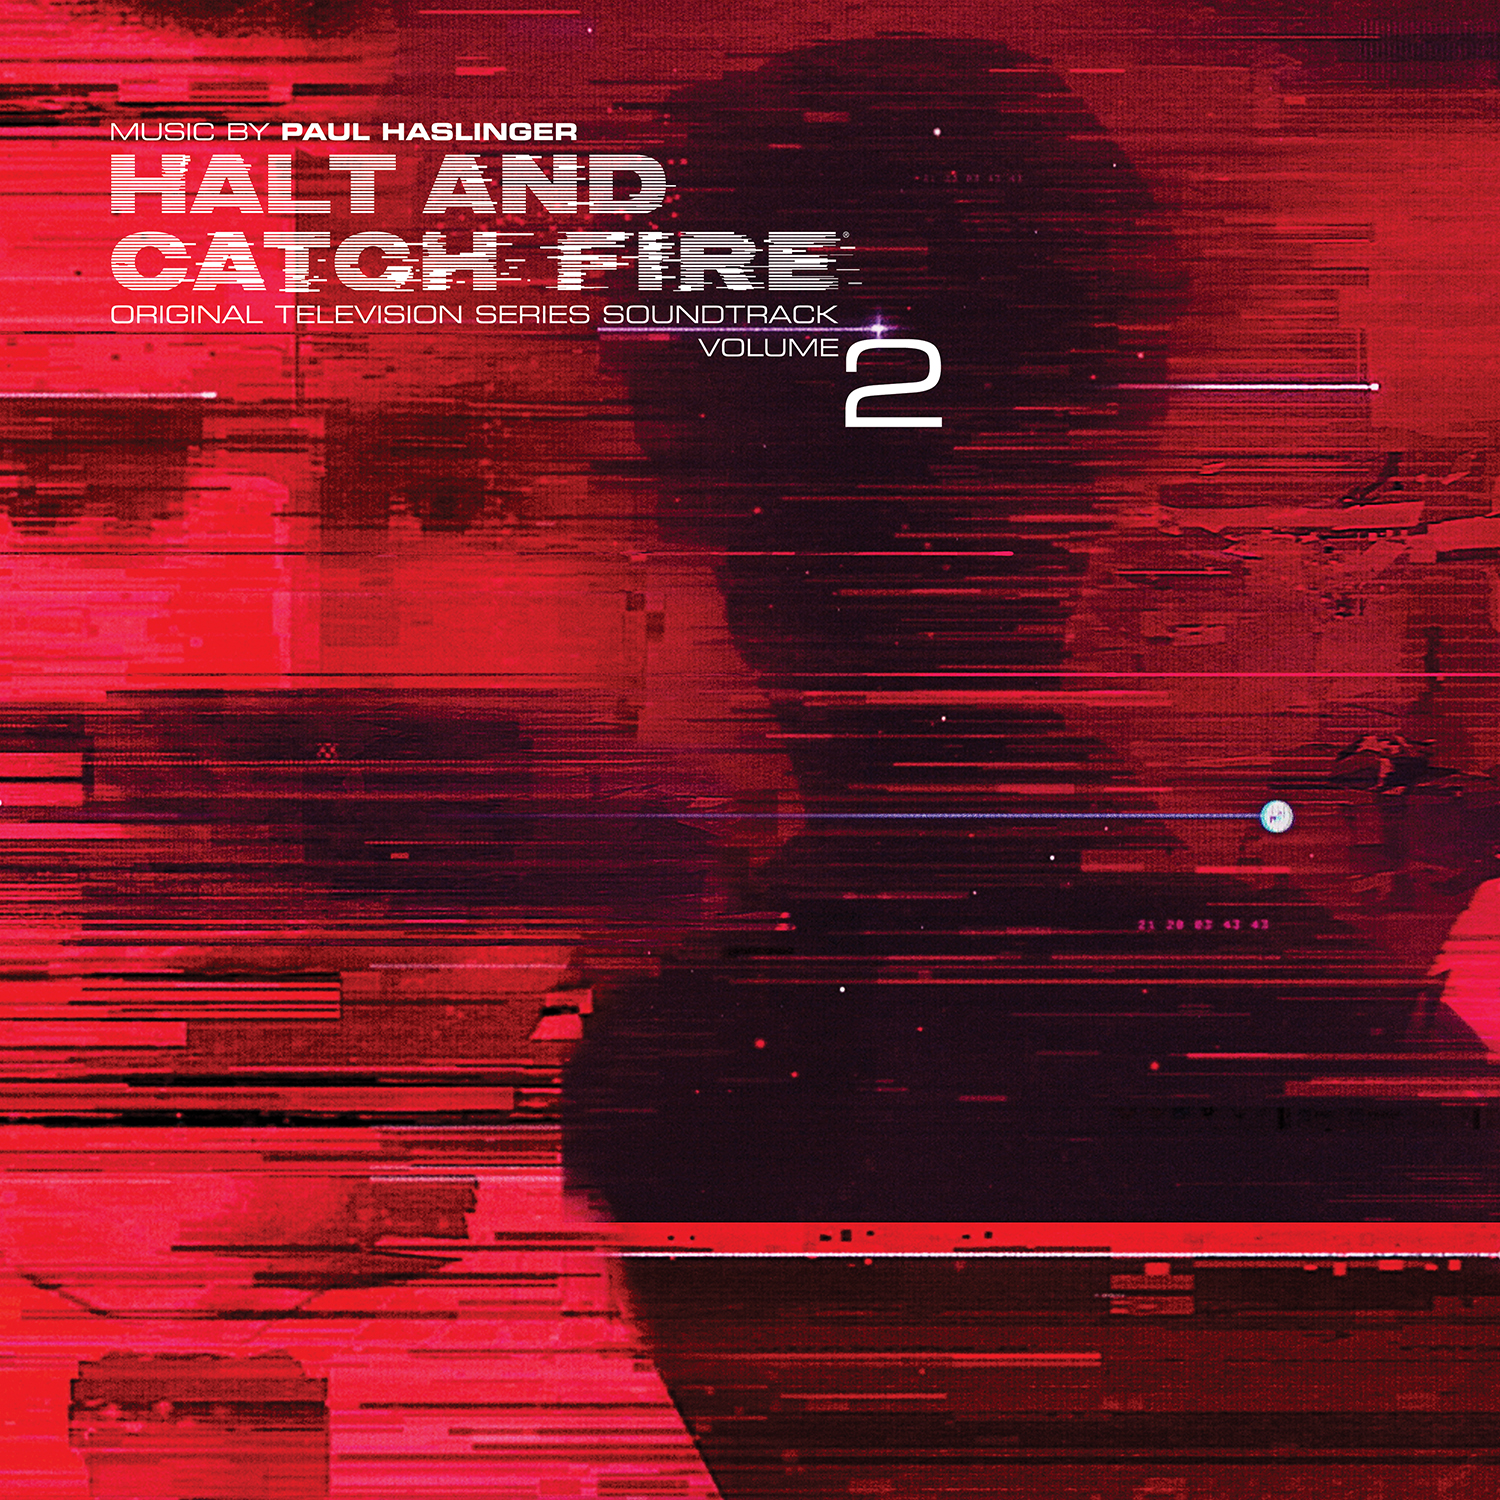 Pop Disciple PopDisciple Soundtrack OST Score Film Music New Releases Halt and Catch Fire Vol. 2 Paul Haslinger